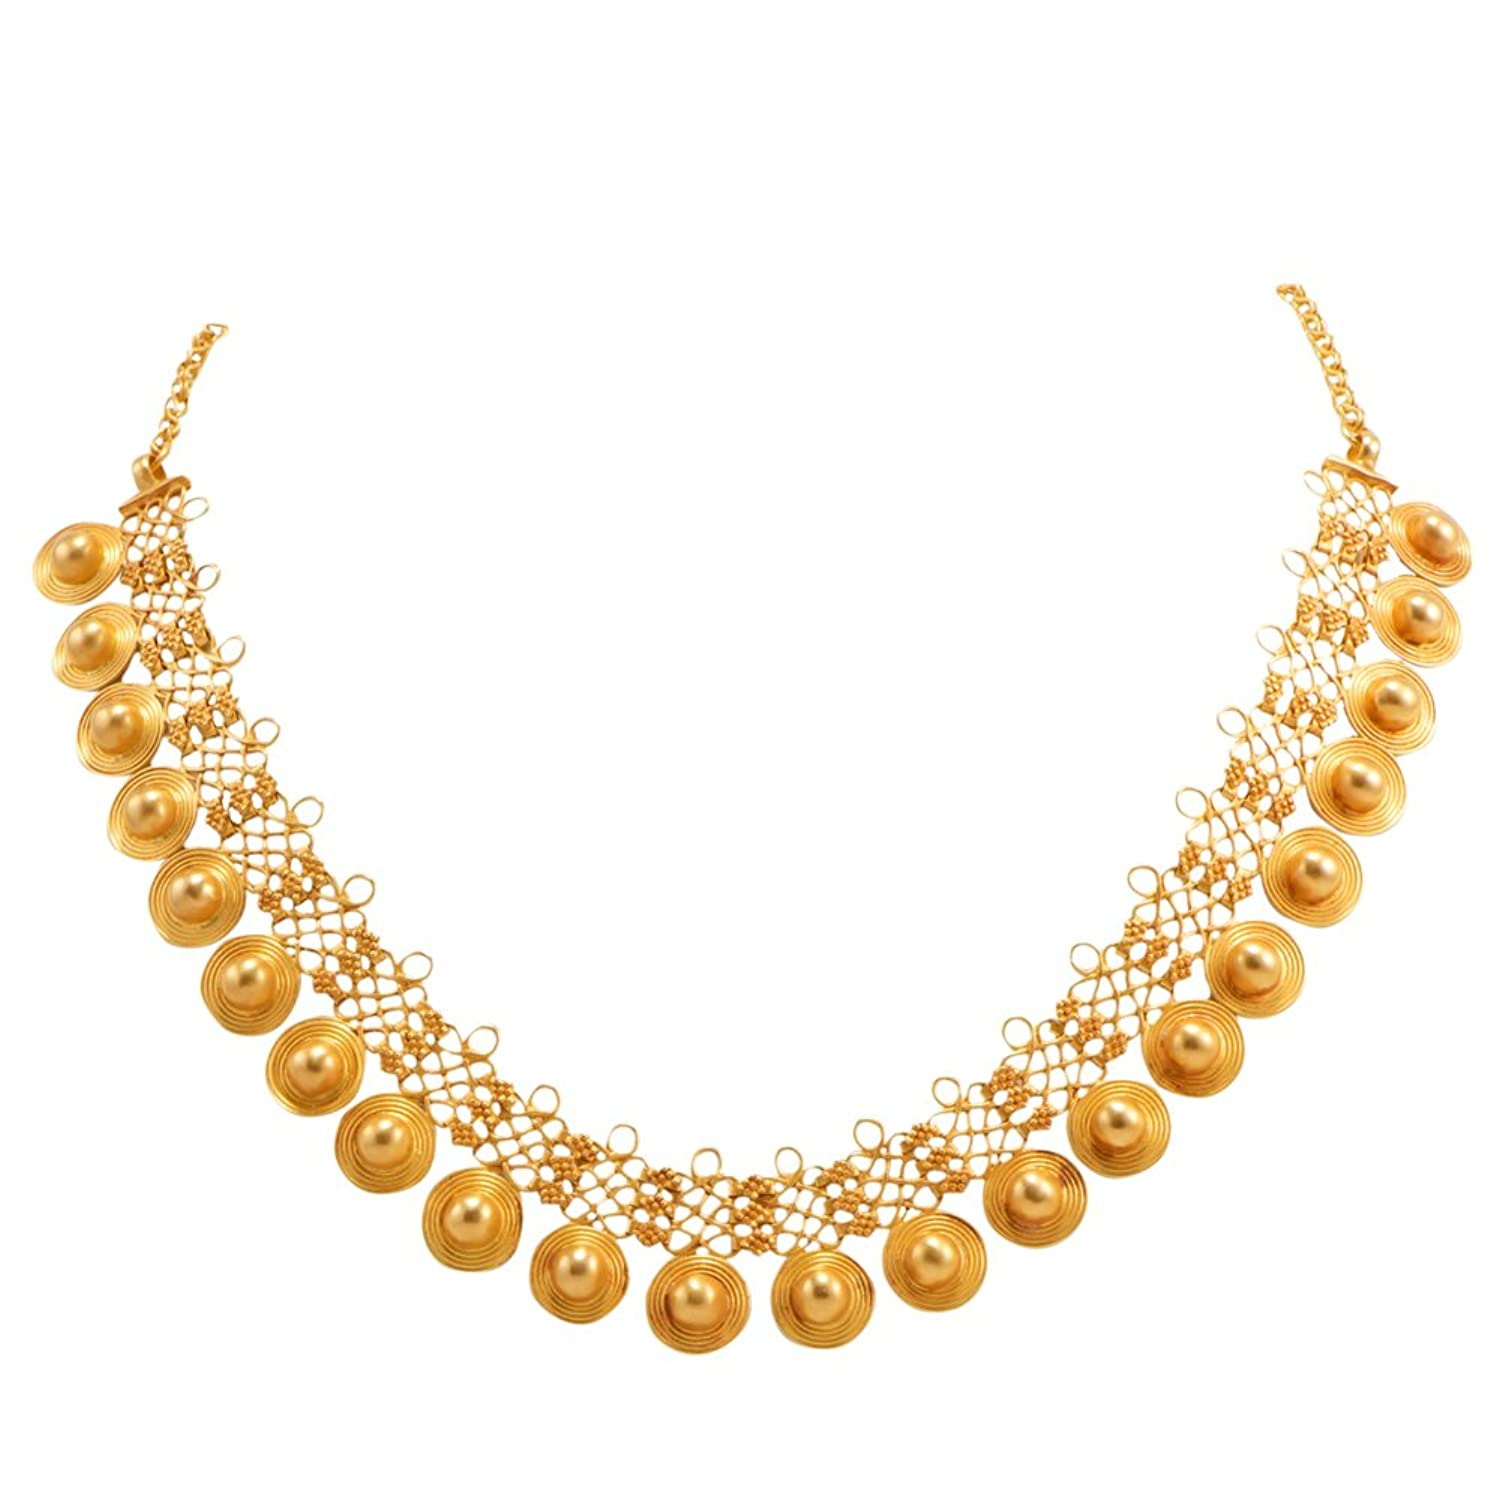 jewellery in necklace online prices amazon store joyalukkas low at india gold light weight buy dp